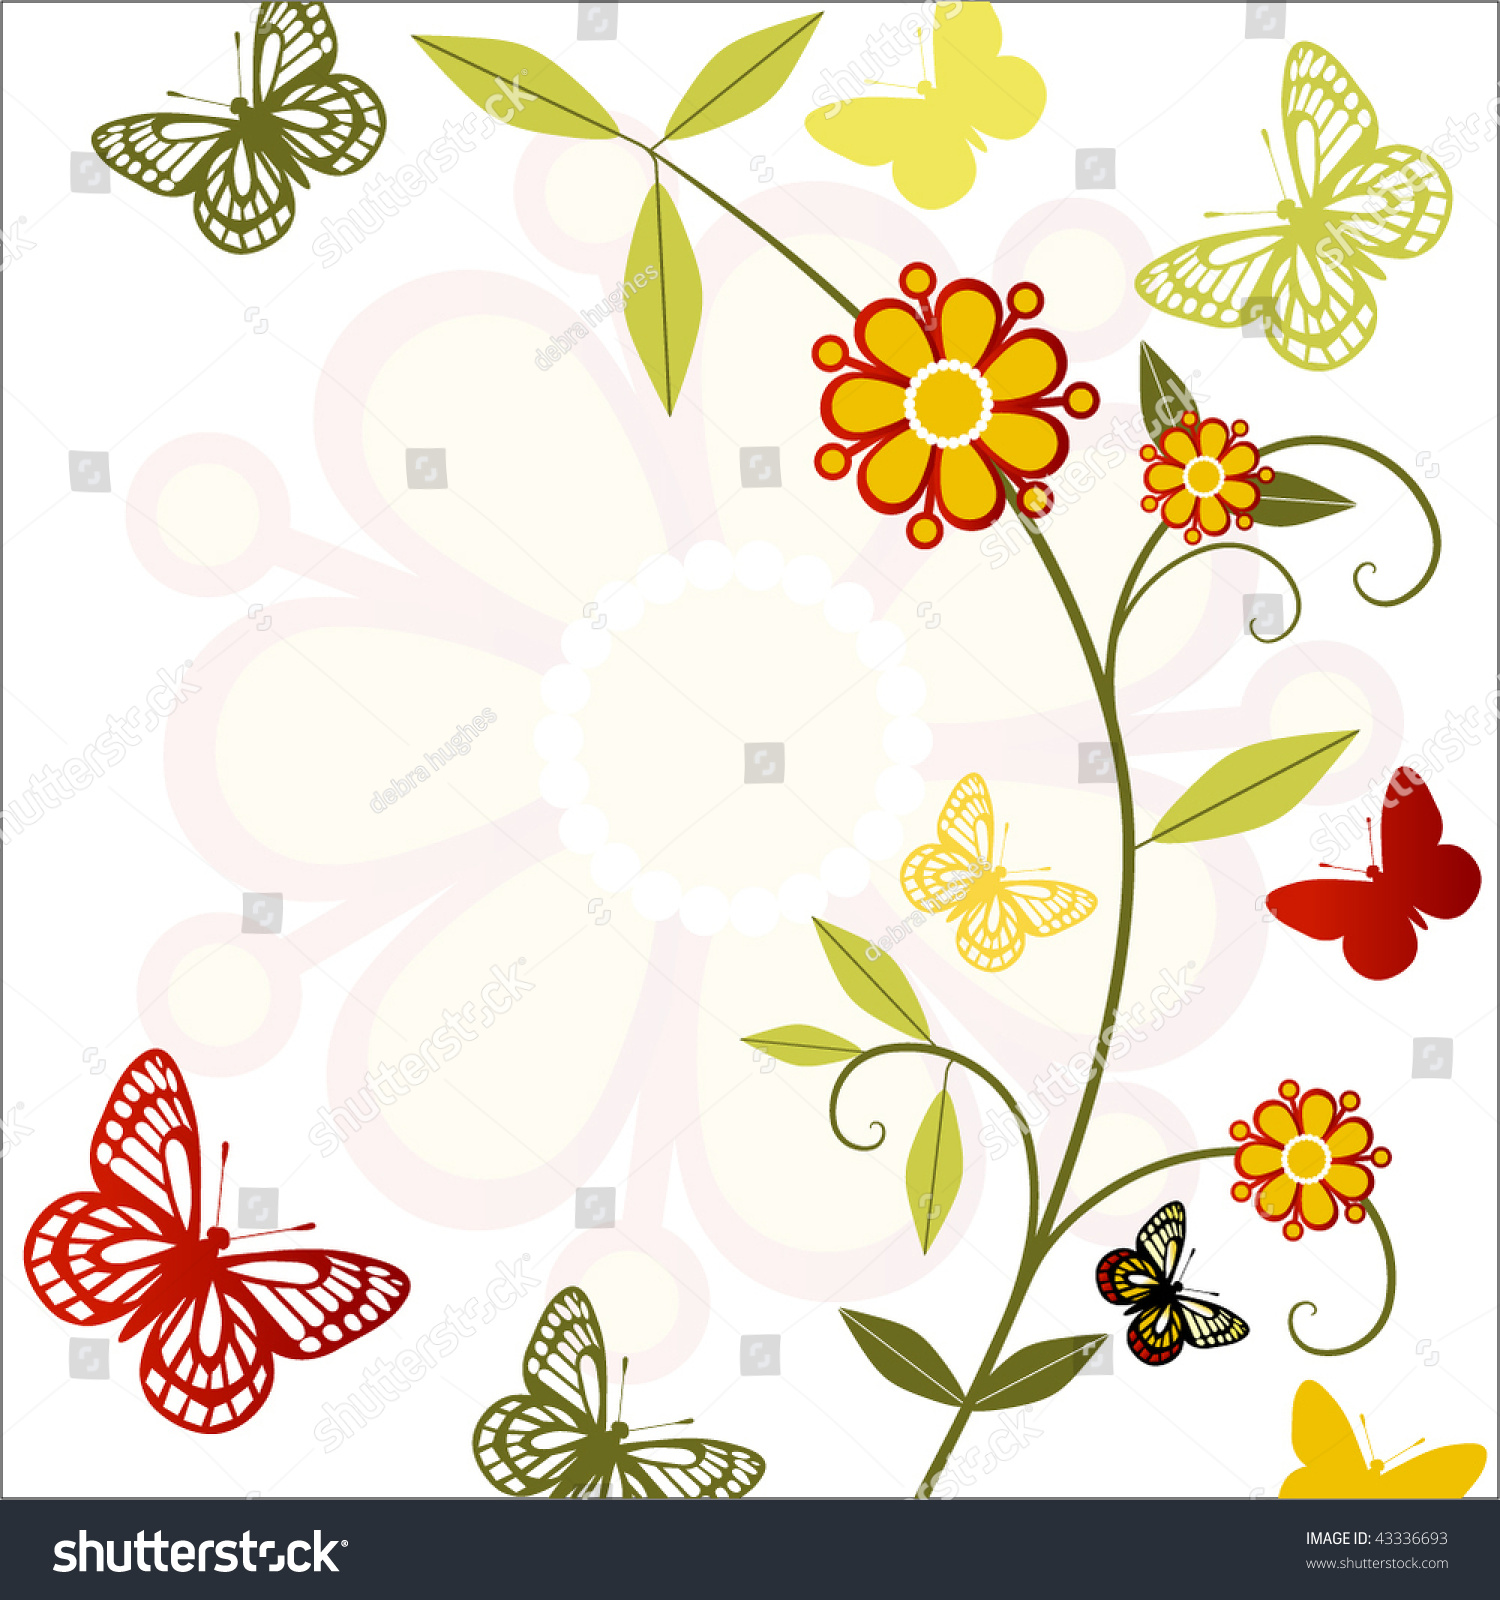 Stem Butterflies Funky Flowers Stock Vector 43336693 - Shutterstock